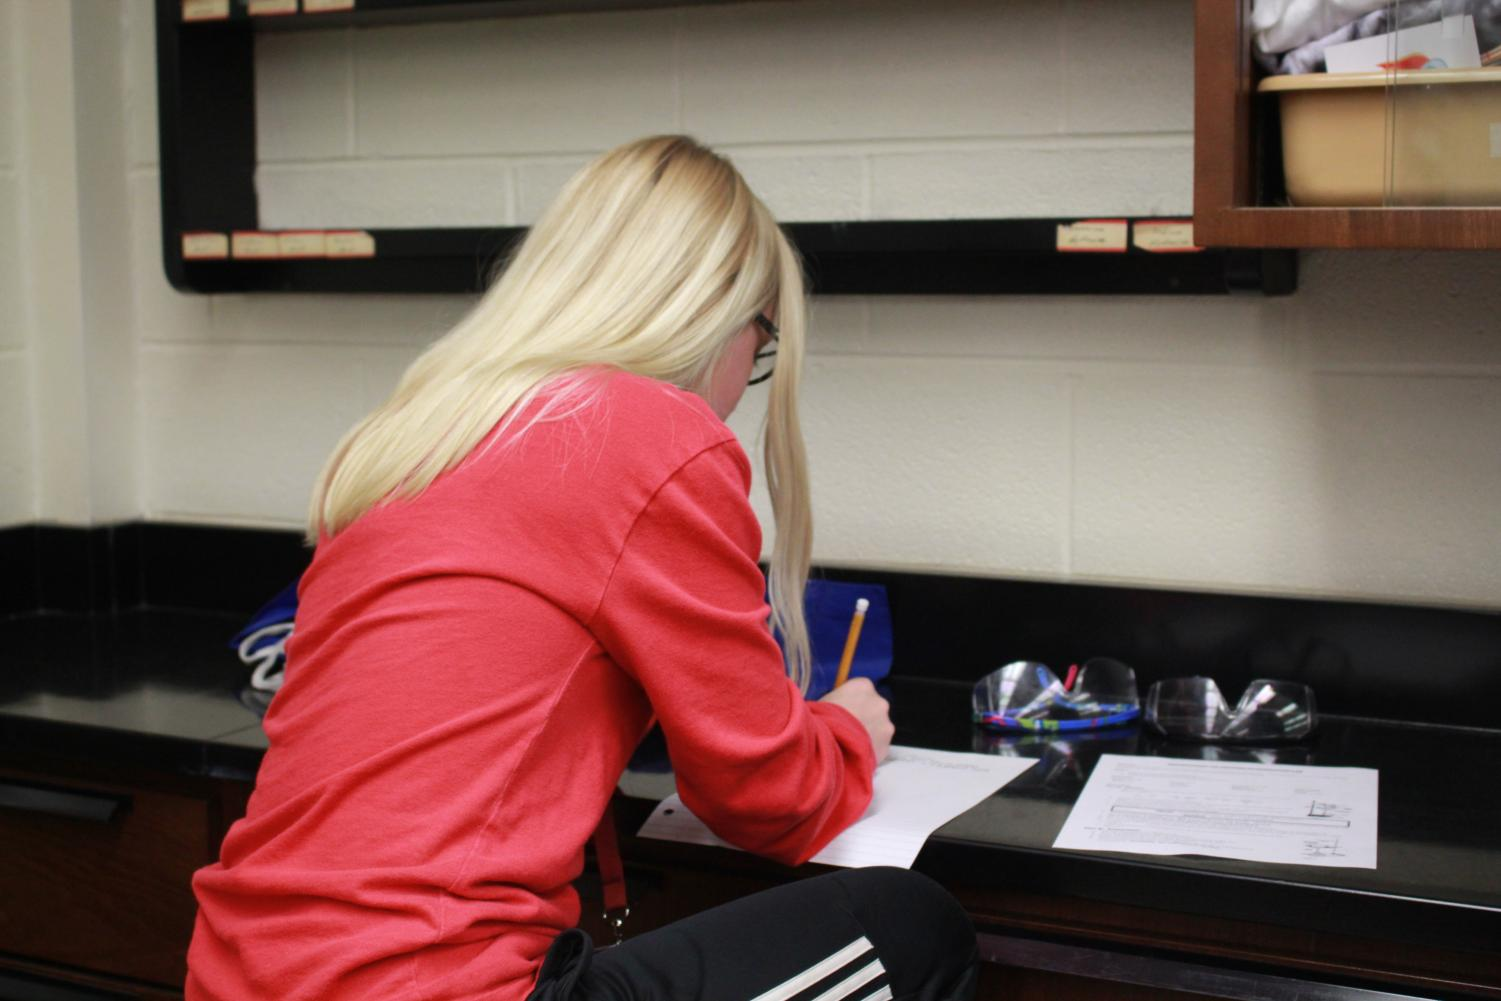 Sophomore Alanna Cunningham works on physics classwork days before the first marking period midterm. During the first midterm, students claimed to have plenty of time to study yet presently, students disagree with the midterm schedule. Many believe midterms should be held back or pushed further due to the eight-day holiday break.